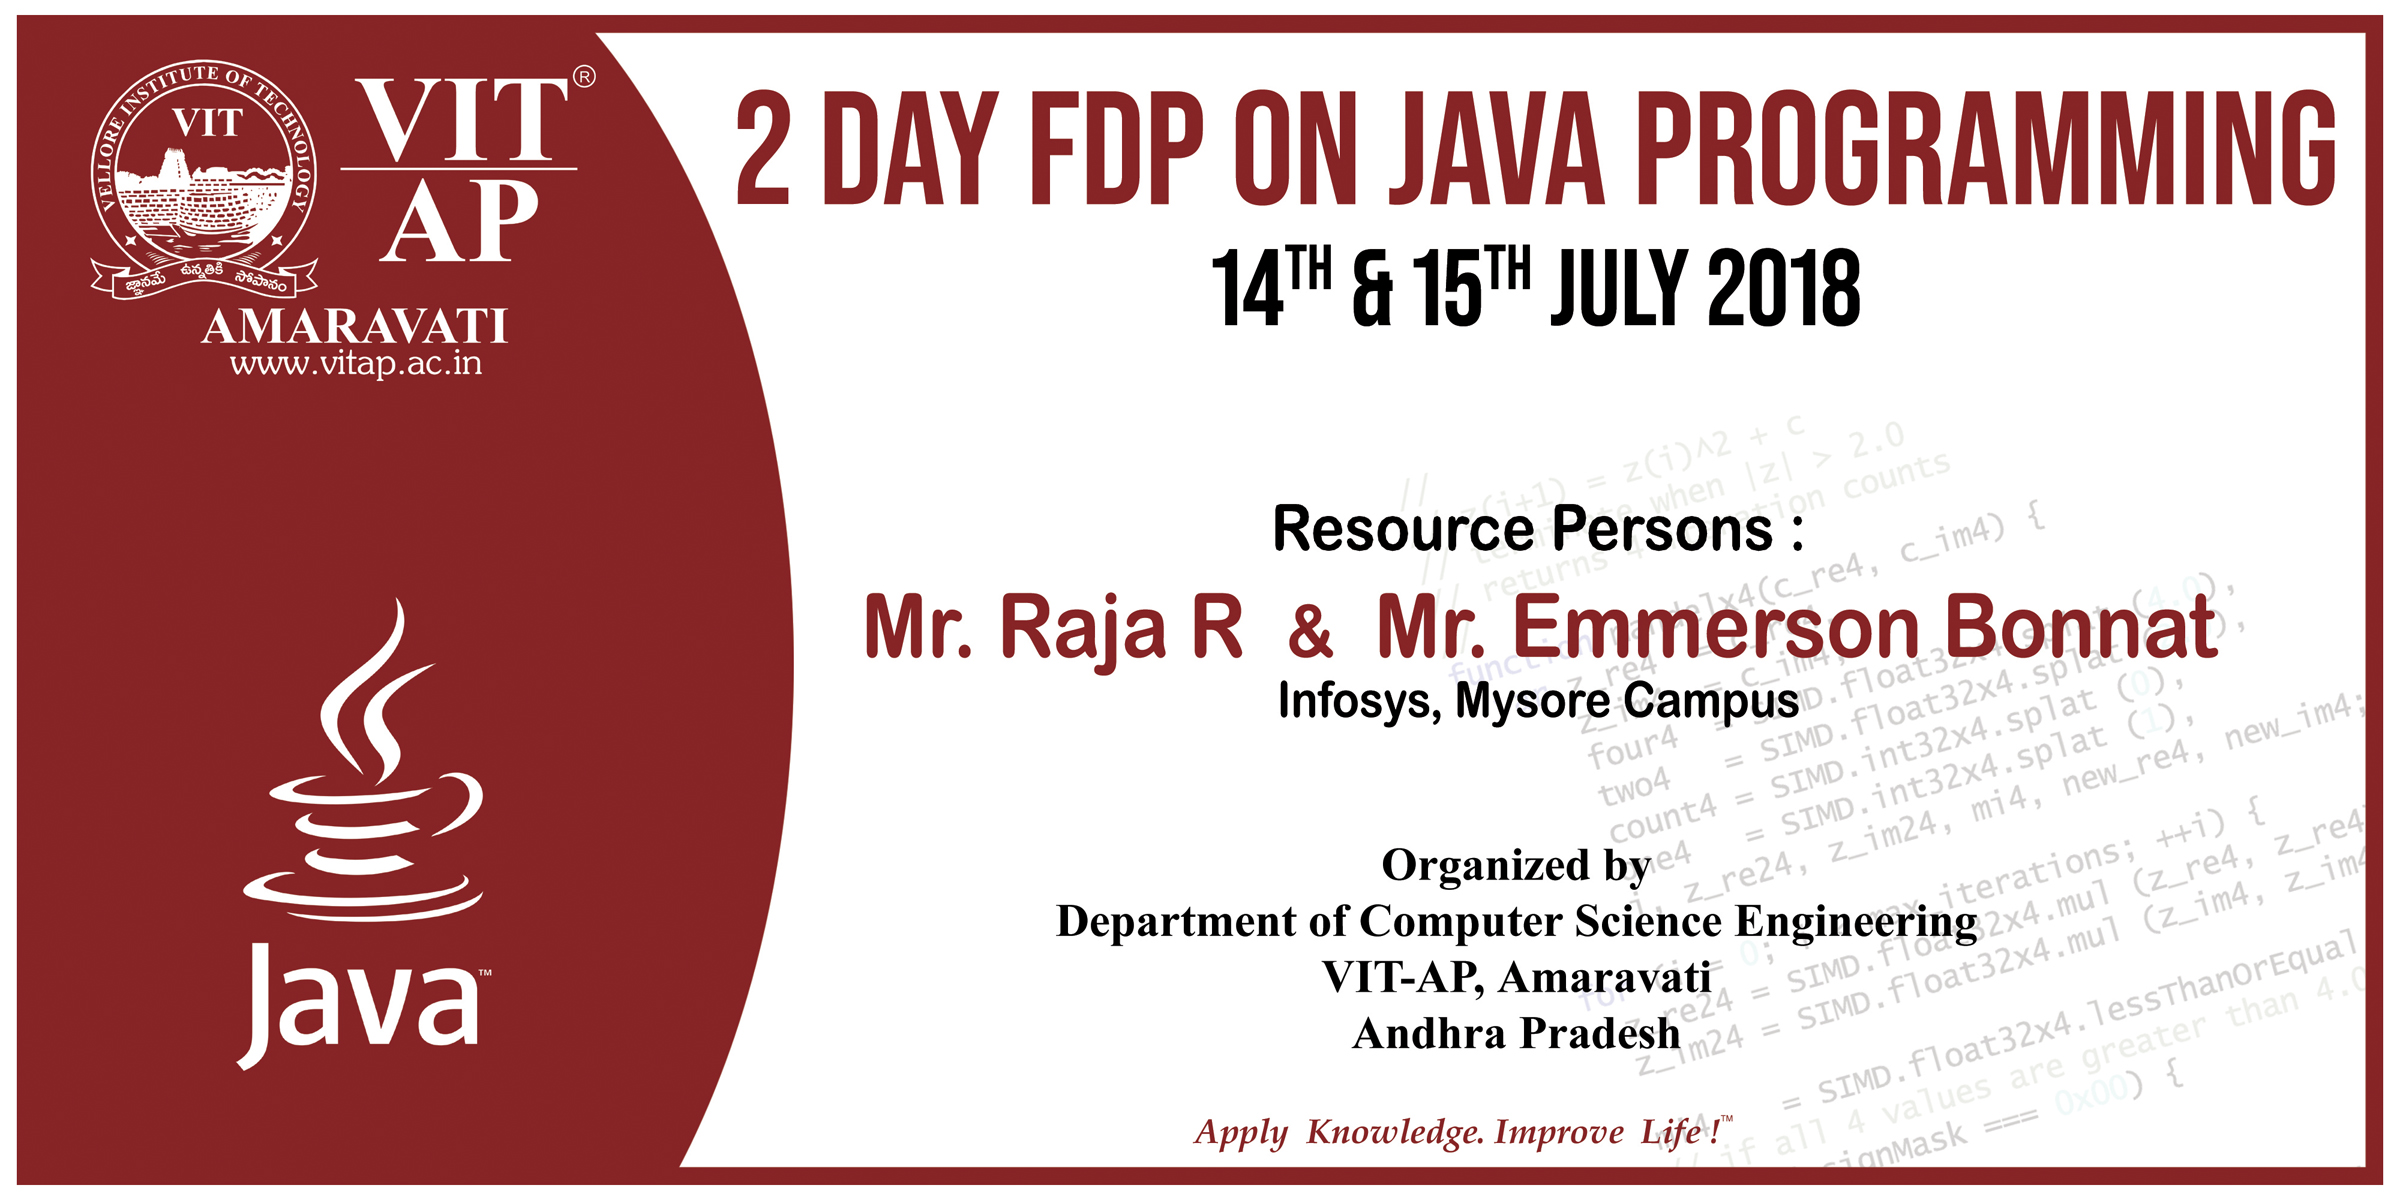 2 DAY FDP ON JAVA PROGRAMMING, 14<sup>th</sup>-15<sup>th</sup>JULY 2018